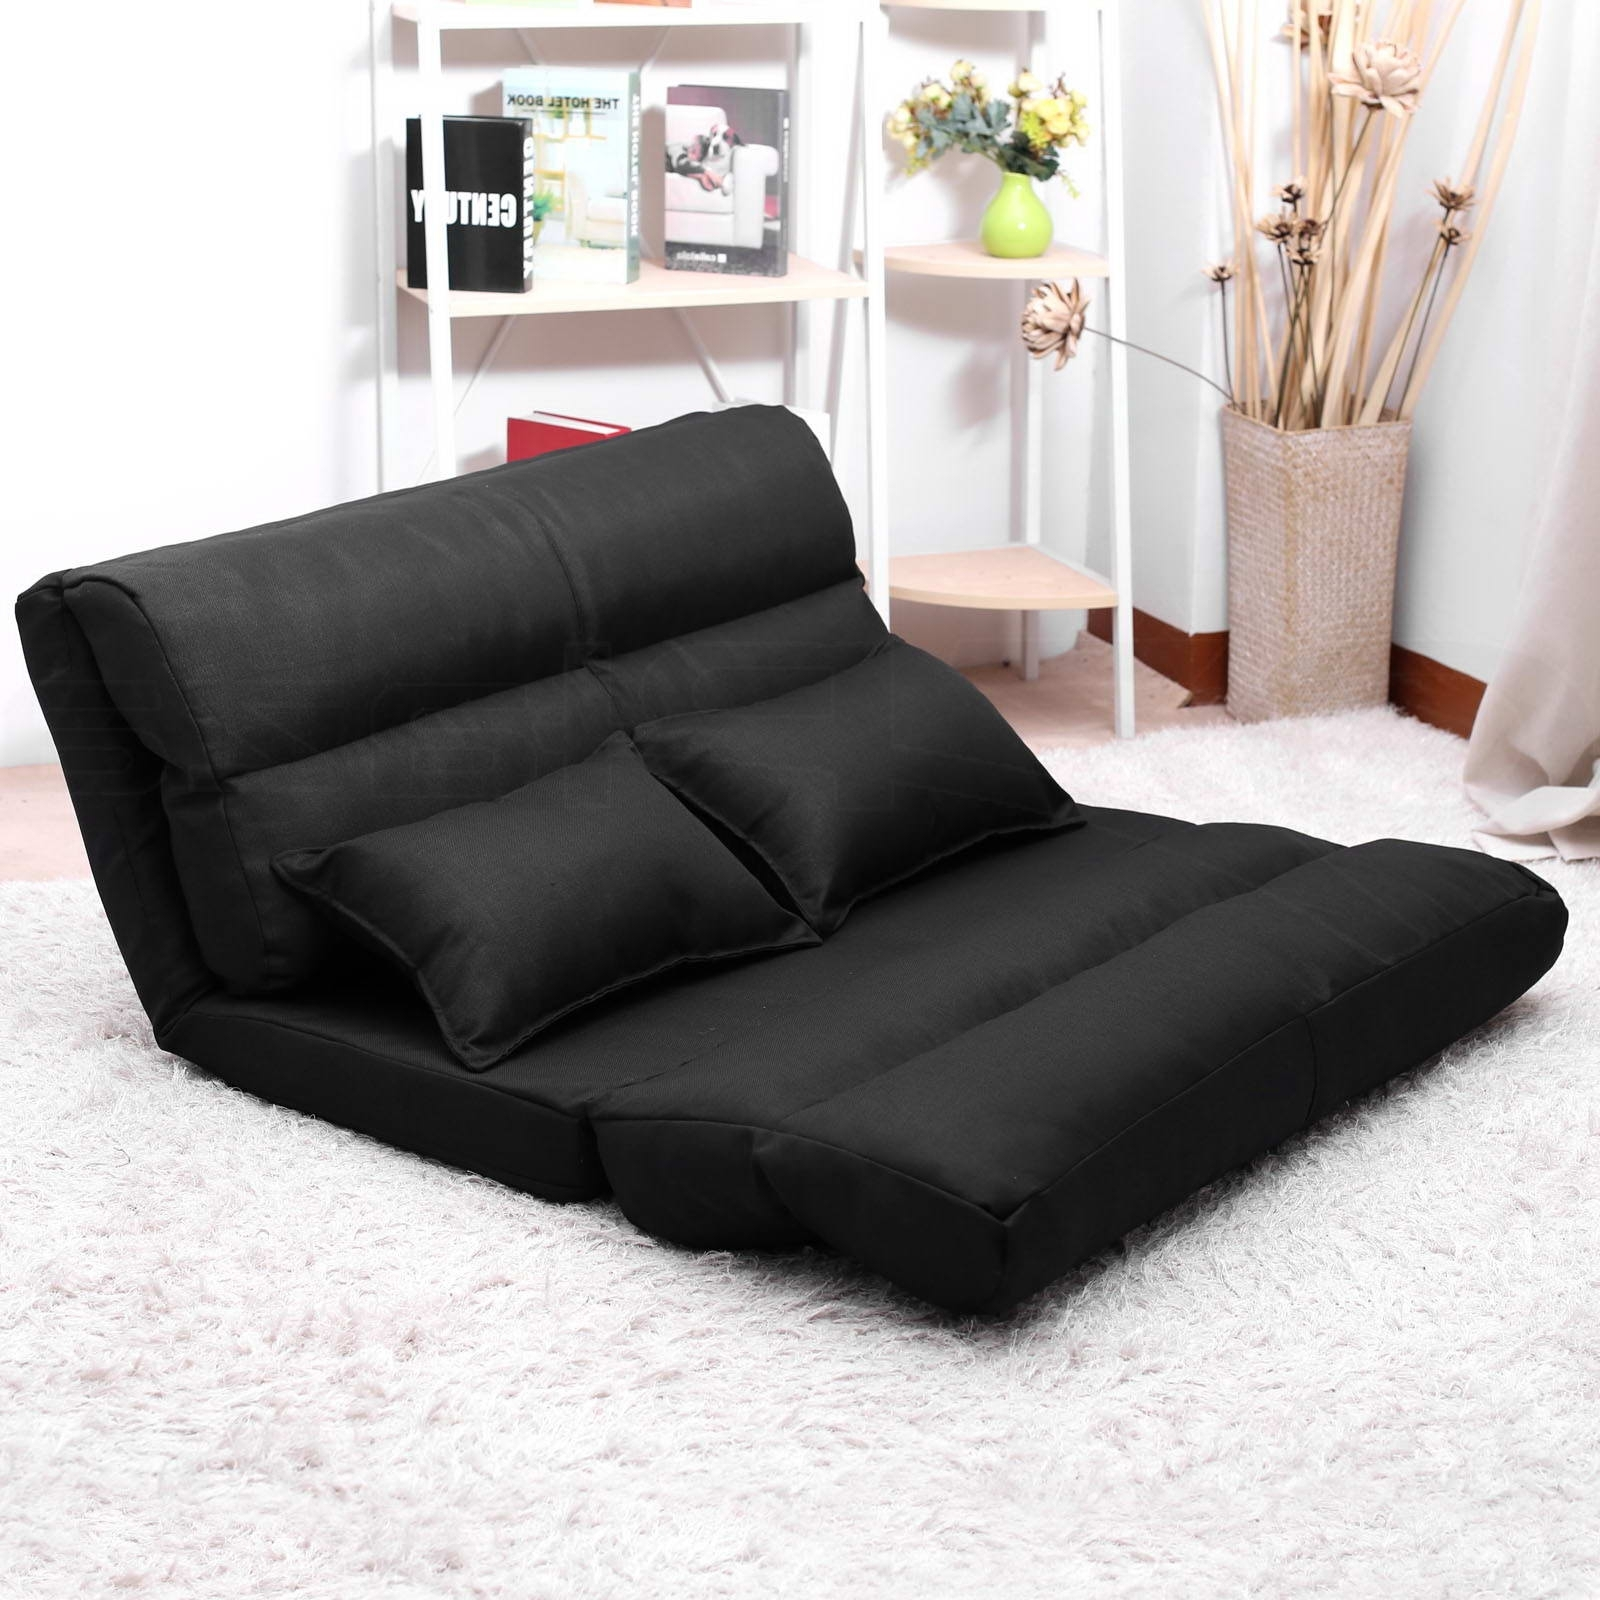 Chaise Lounge Sofa Beds With Regard To 2017 Lounge Sofa Bed Double Size Floor Recliner Folding Chaise Chair (View 5 of 15)